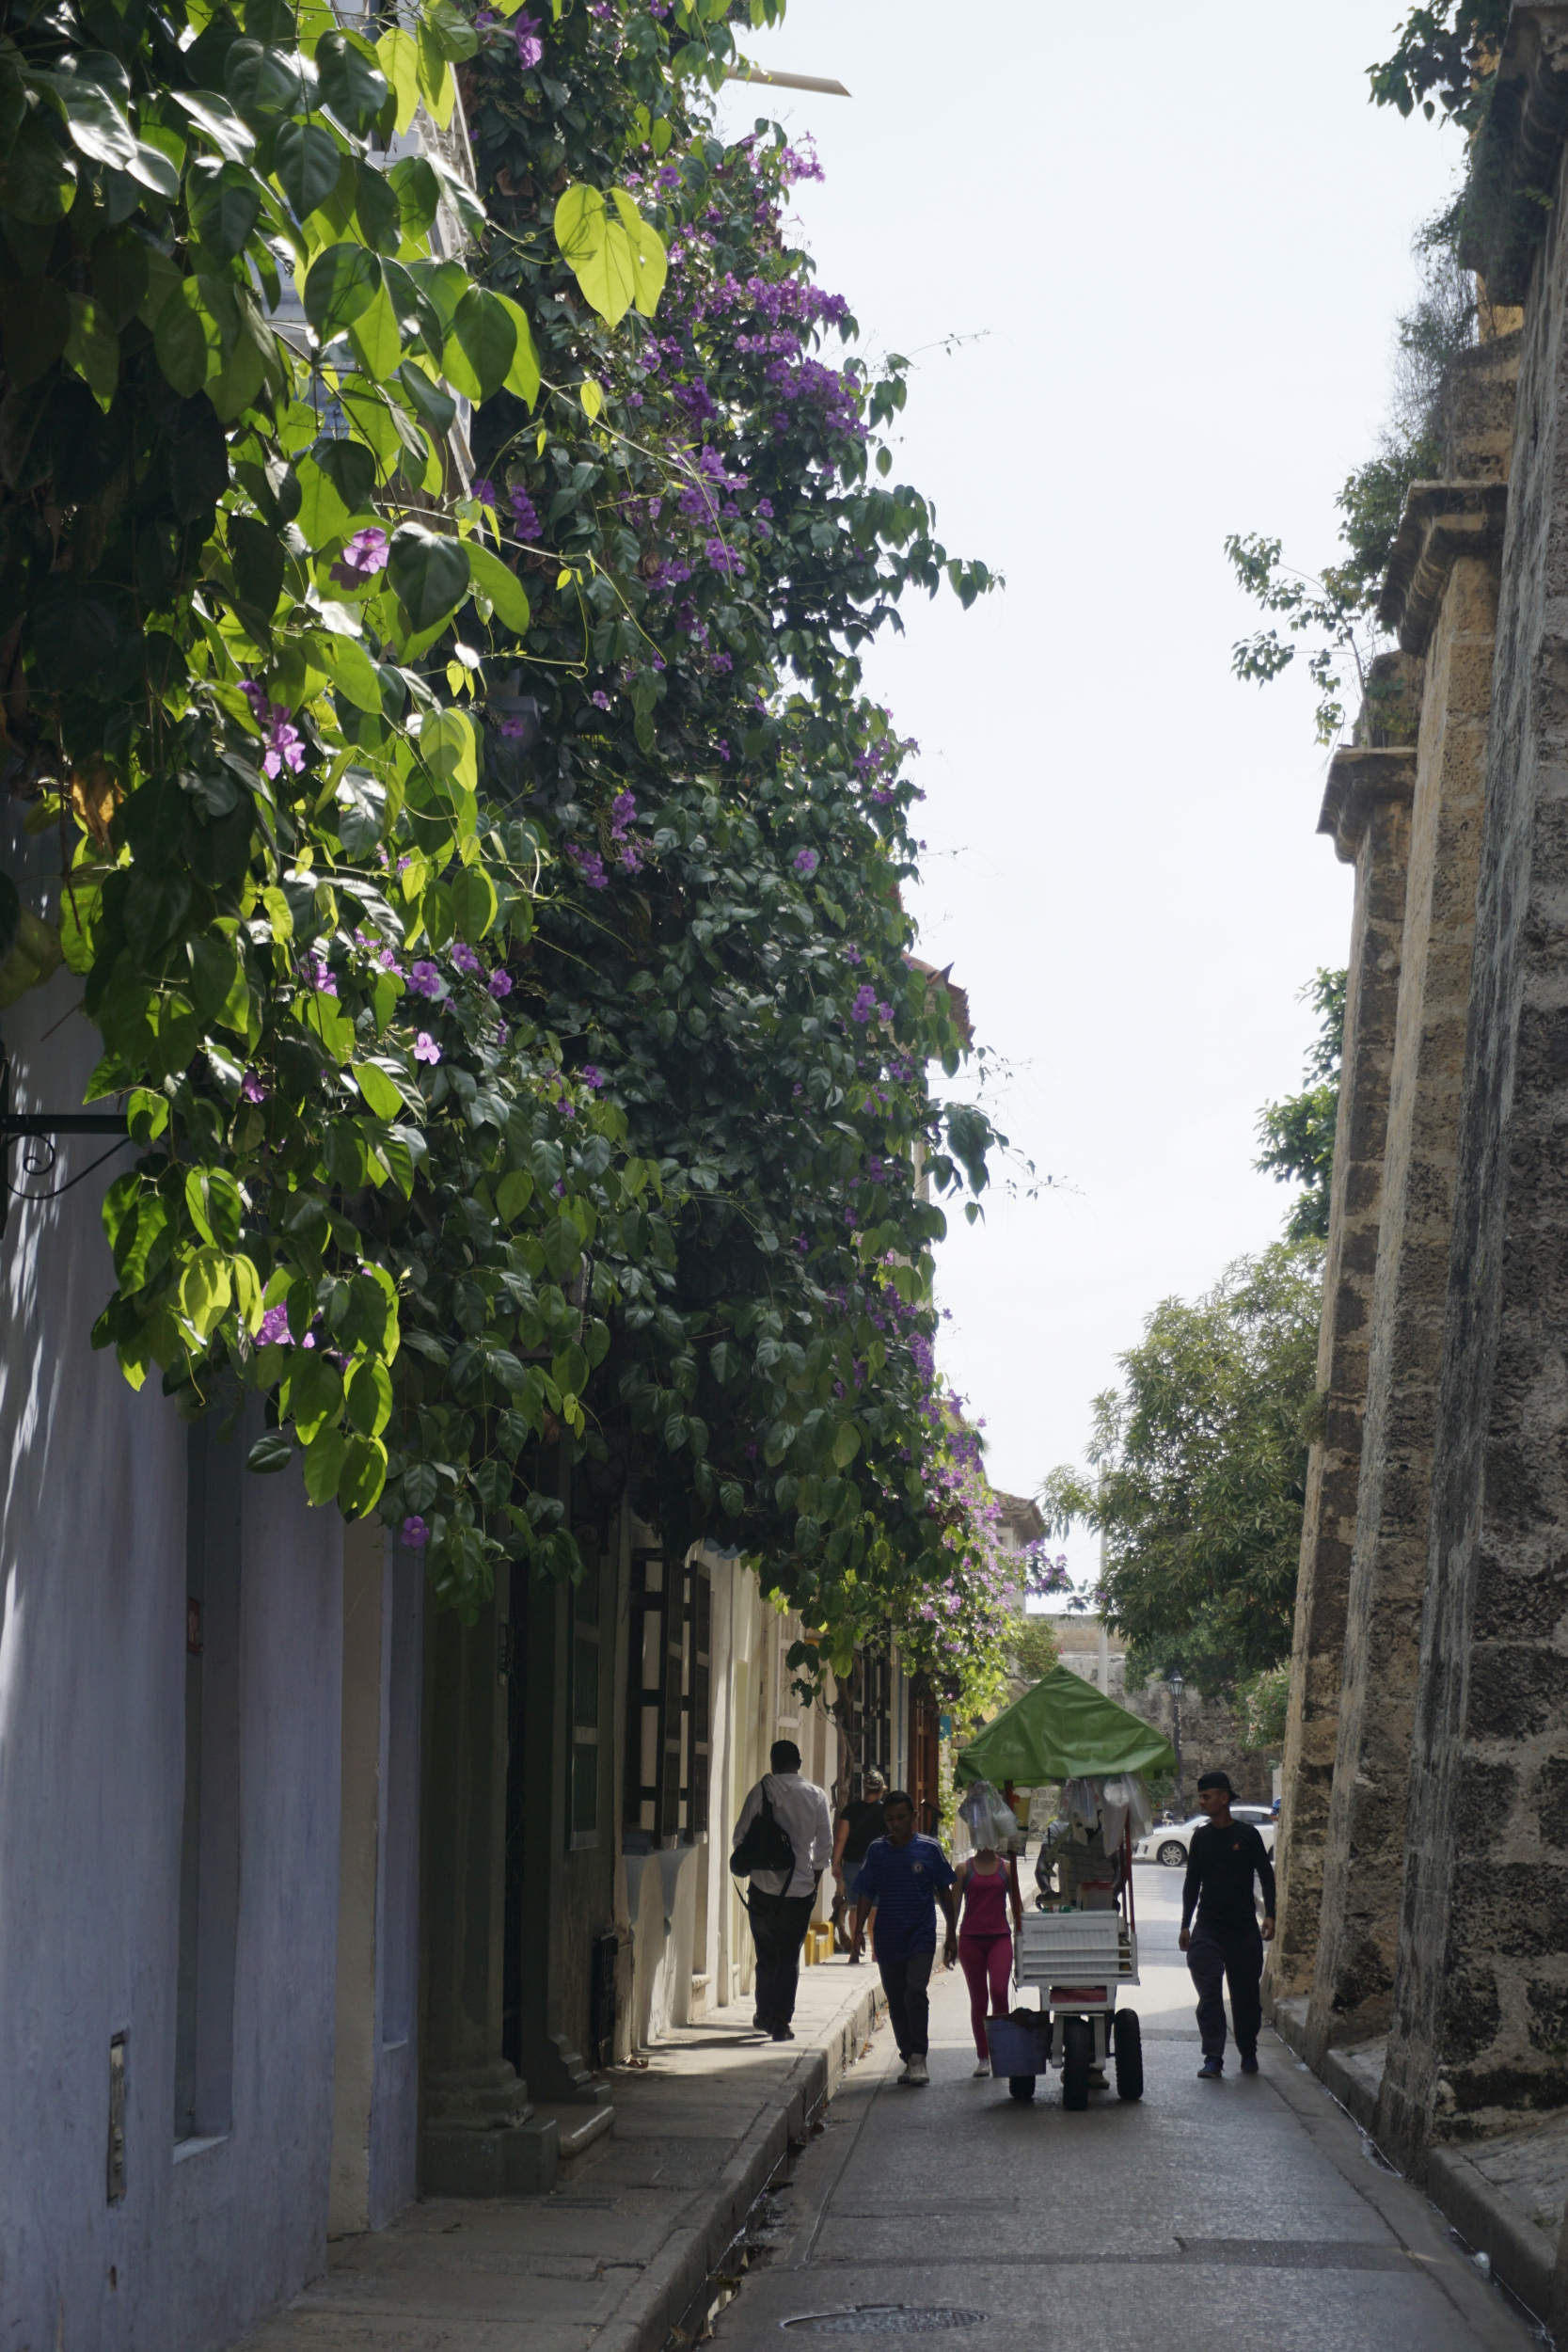 4. the streets of Cartagena